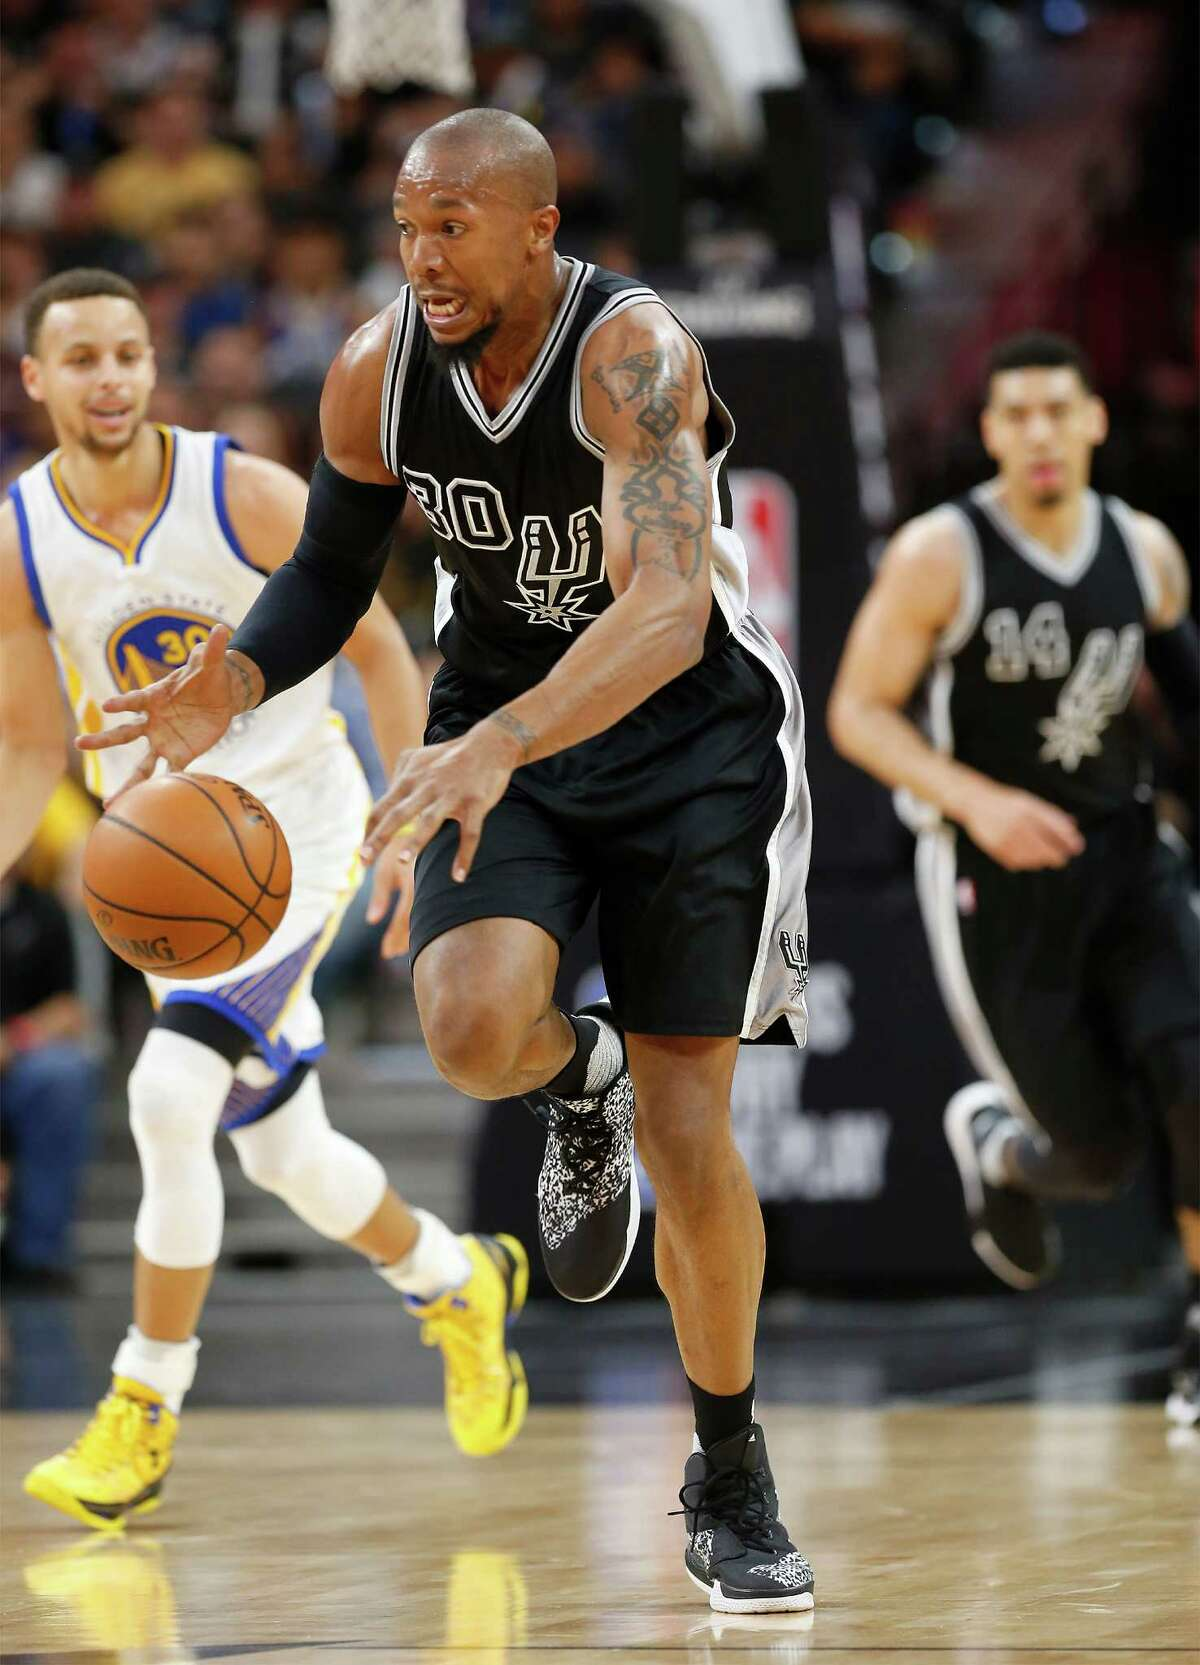 Spurs' David West (30) steals the ball from Golden State Warriors' Stephen Curry (30) at the AT&T Center on Sunday, Apr. 10, 2016. (Kin Man Hui/San Antonio Express-News)